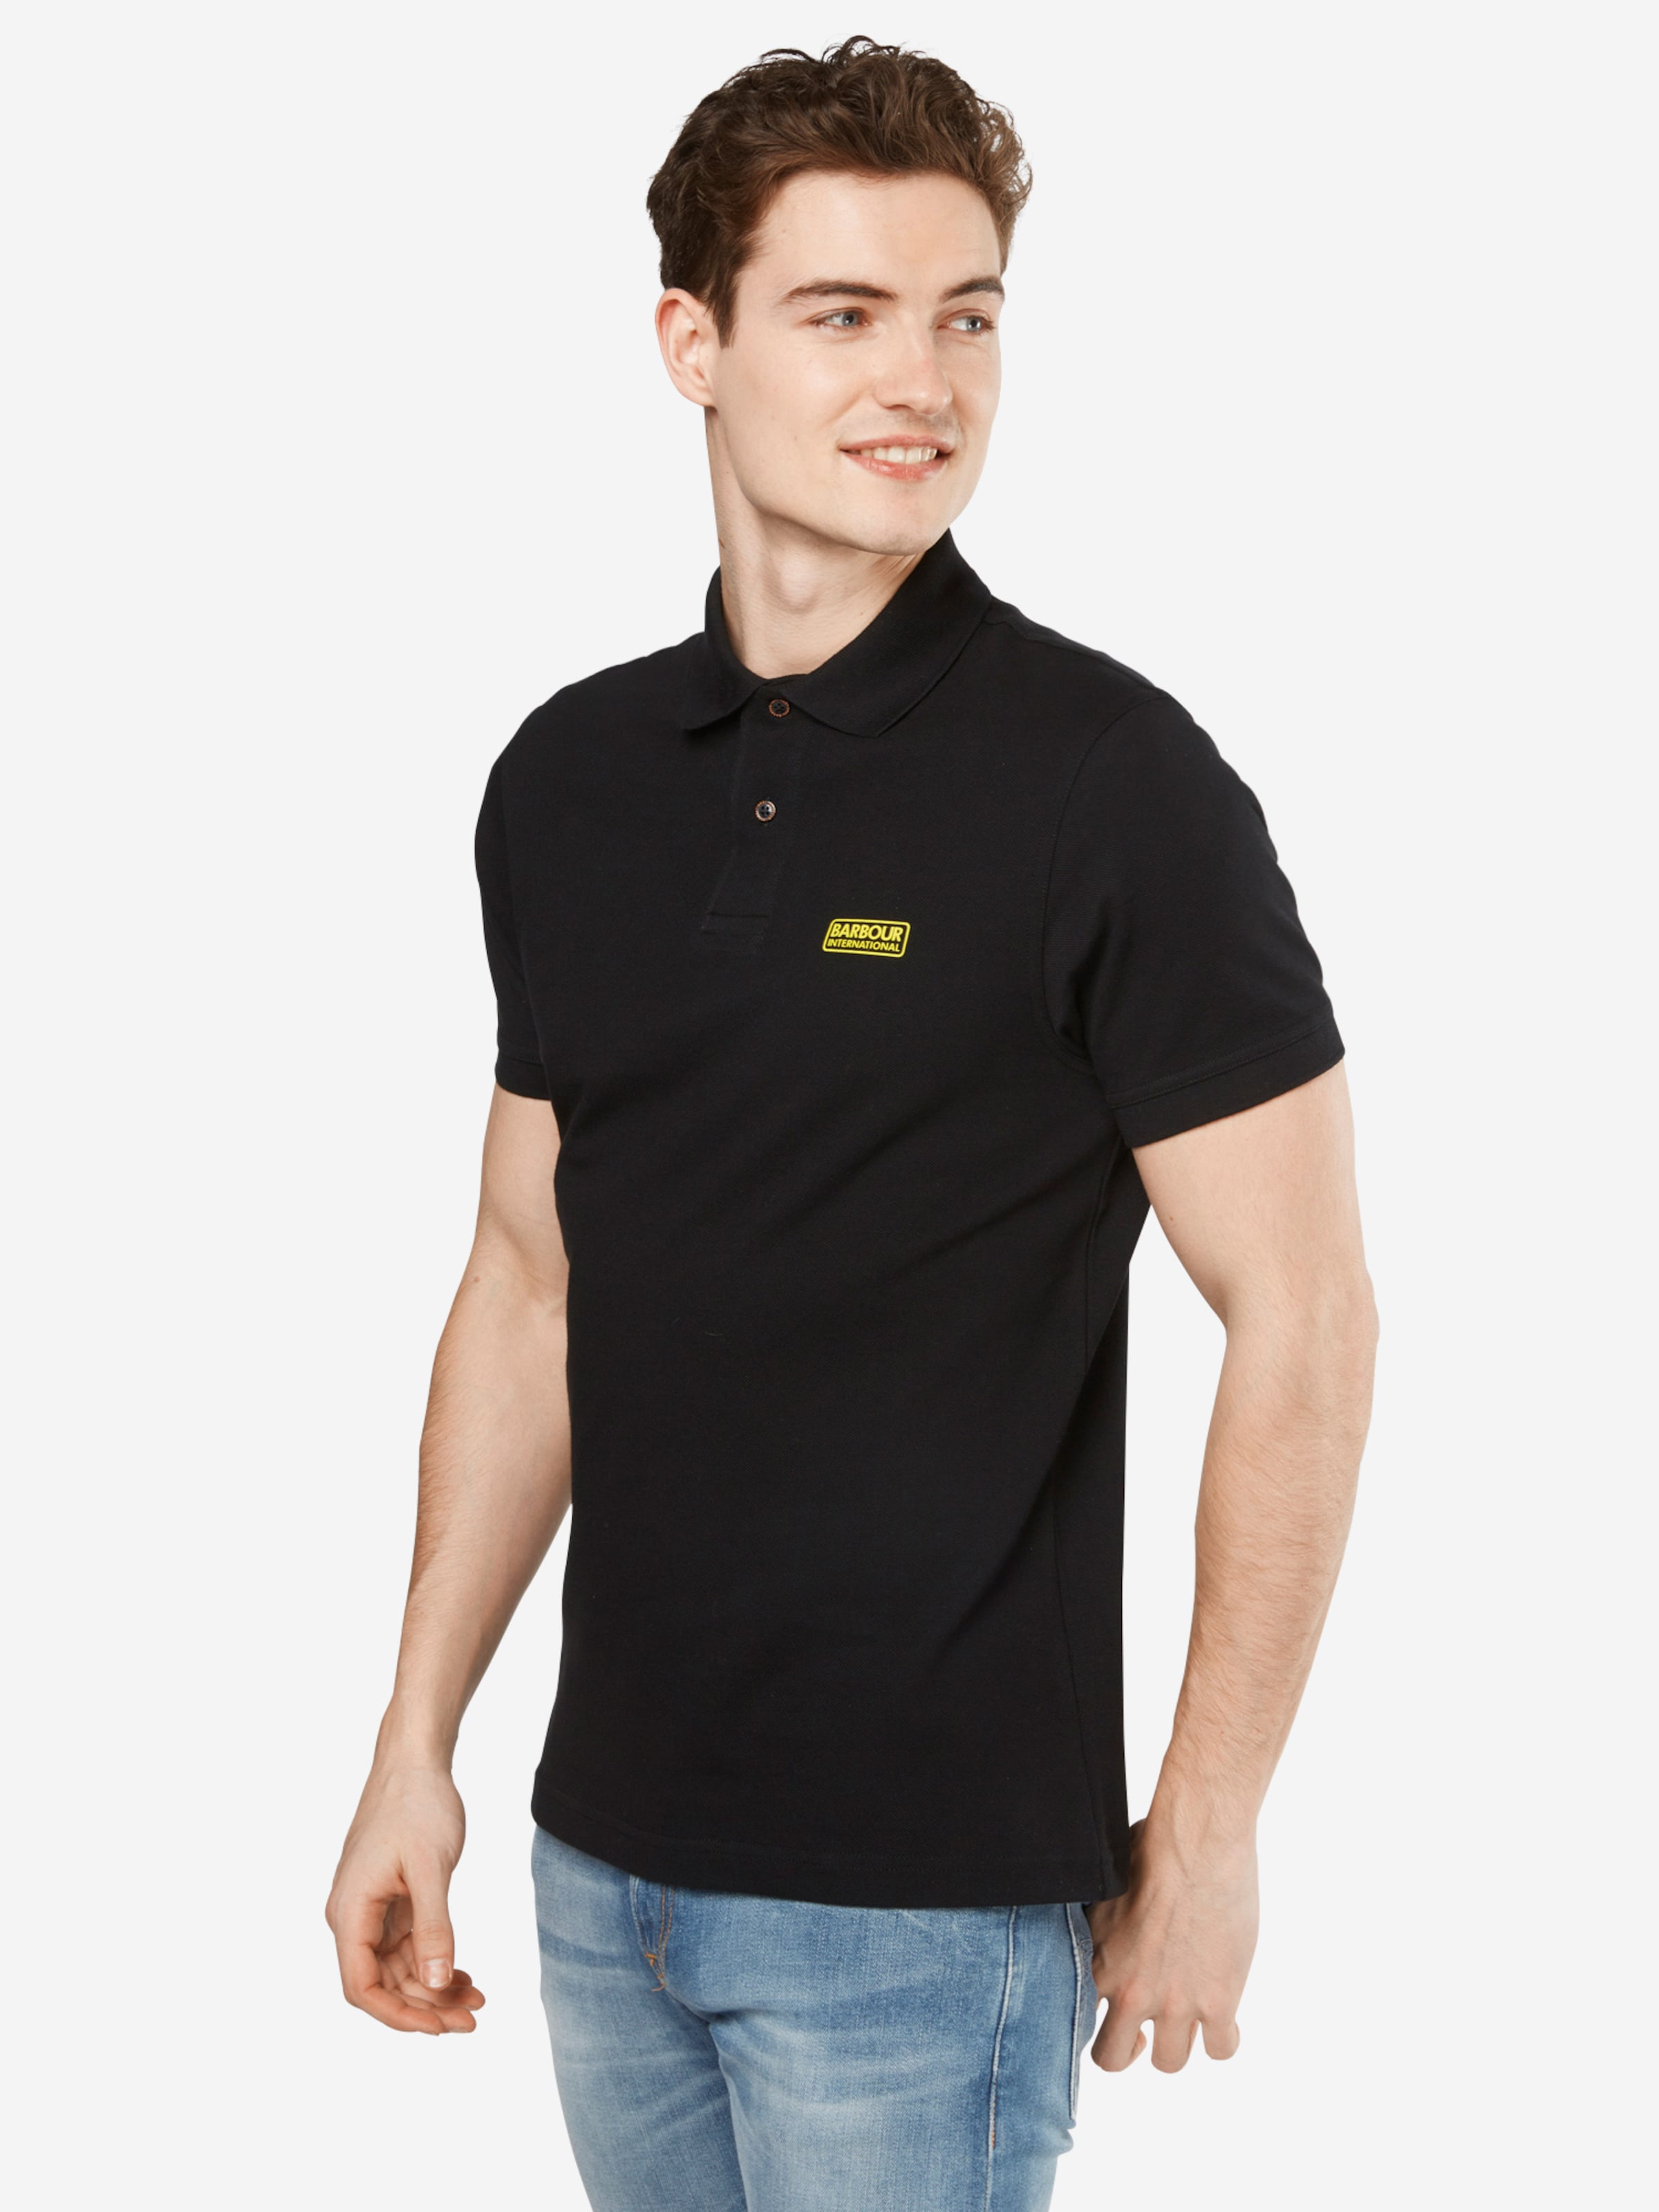 Barbour International Poloshirt 'International Essential' Steckdose Neuesten Original pBbkvQ40c